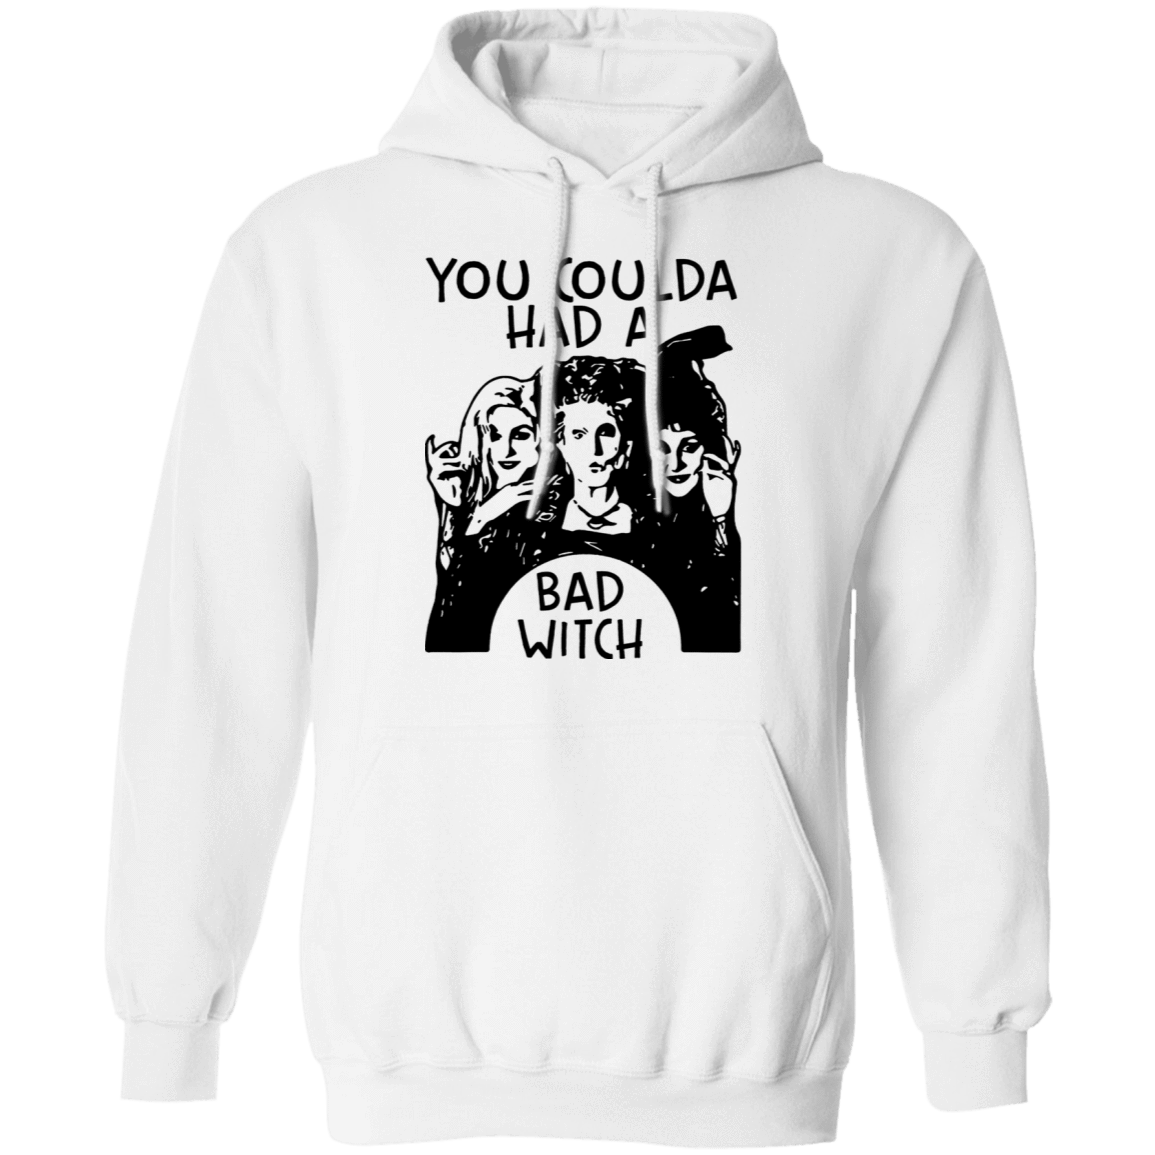 Hocus Pocus You Coulda Had A Bad Witch T-Shirts, Hoodies, Tank 541-4744-79808440-23183 - Tee Ript